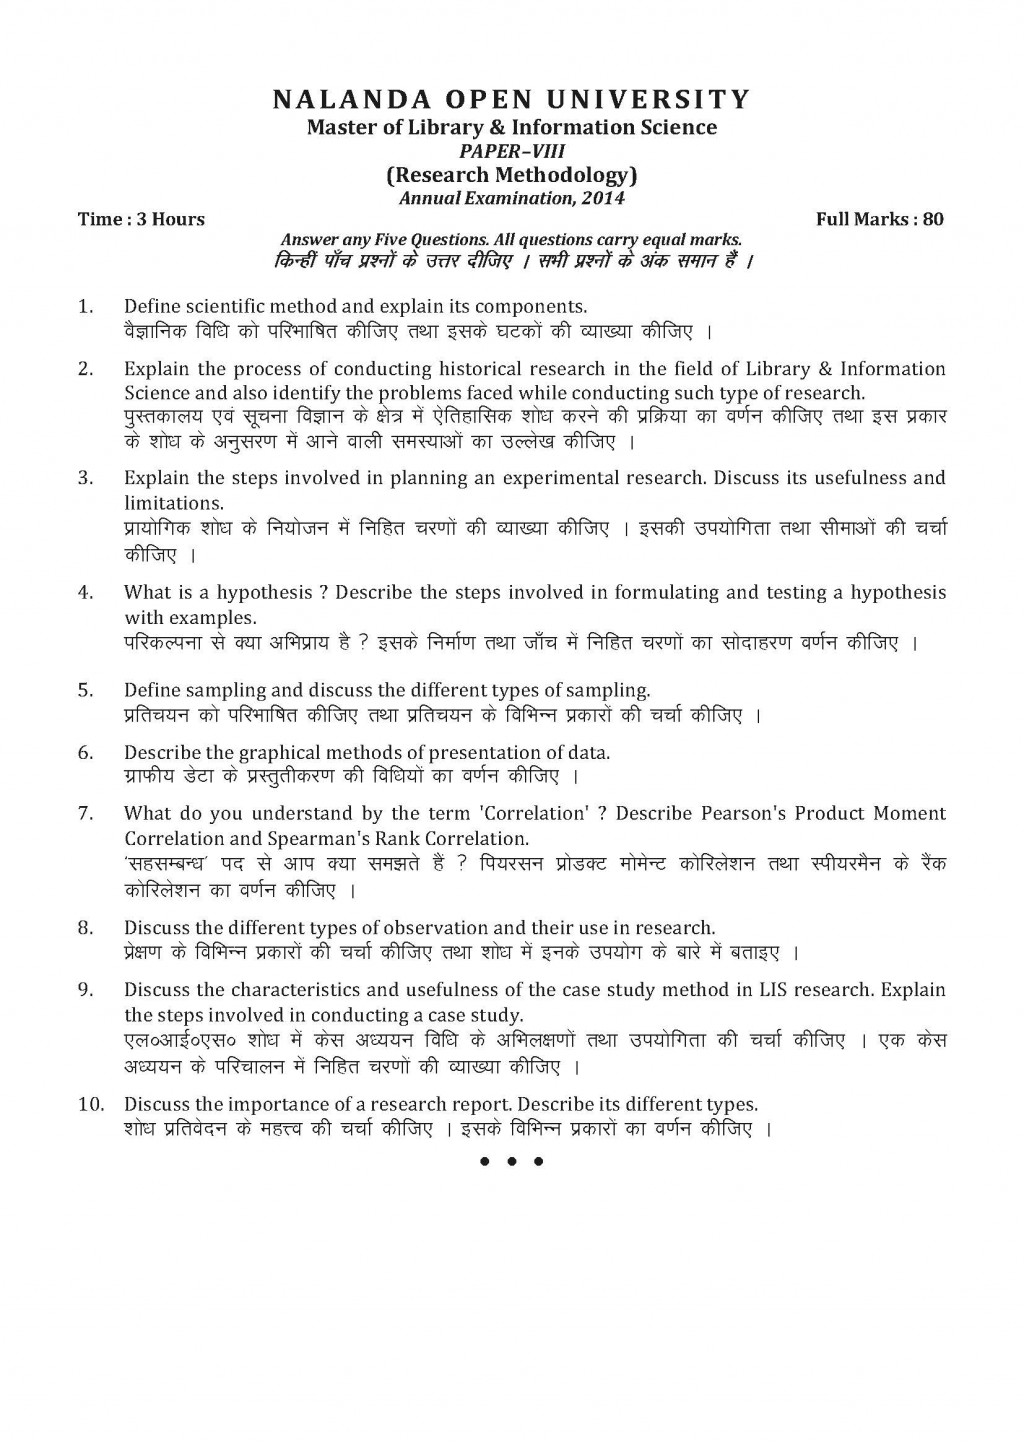 004 Master Of Library Information Science Research Methodology Paper Viii Papers Astounding Pdf Format In Hindi Example Mla Large